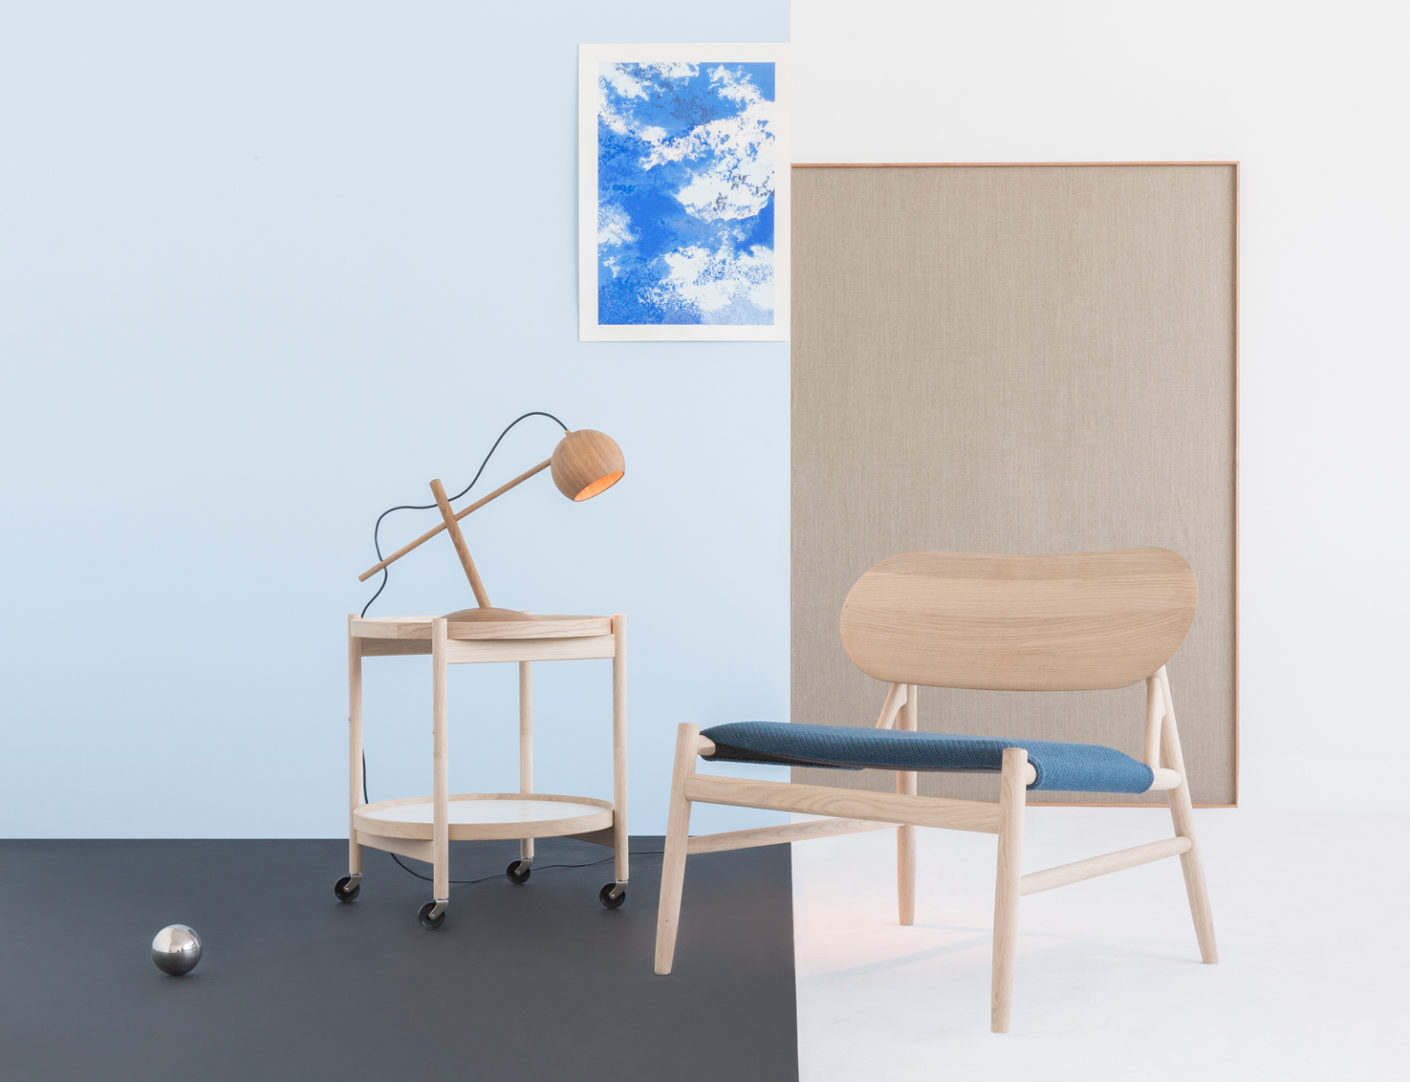 Brdr. Krüger: Instead of following breathless trends, they prefer to create things that are durable thanks to their design and material quality.